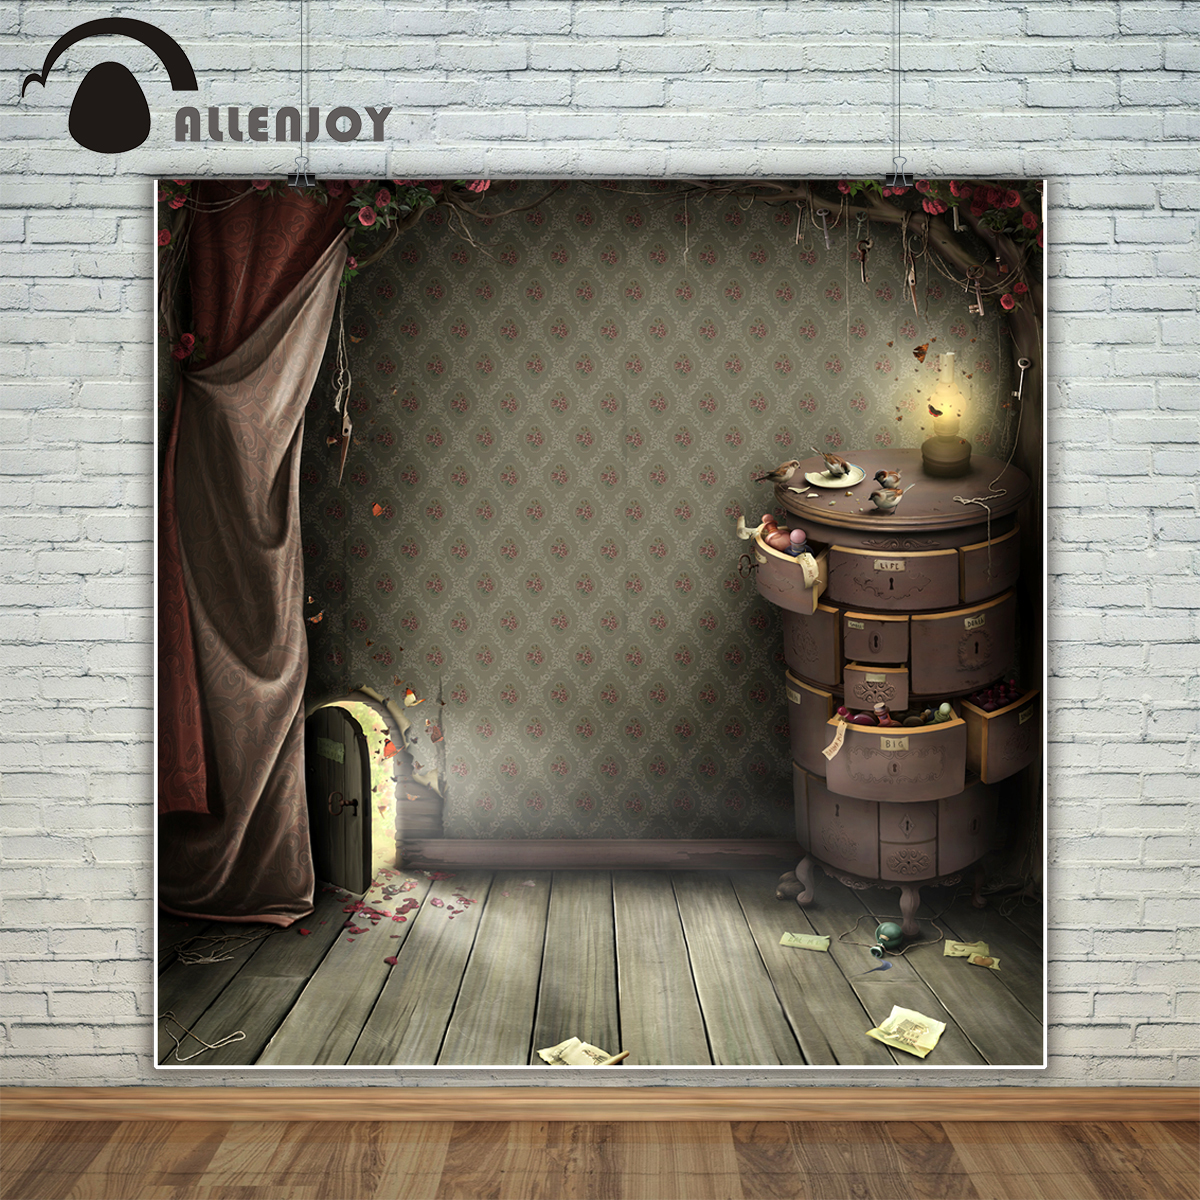 Allenjoy photography backdrop Alice small door amazing garden fairy tale background photo studio new design camera fotografica